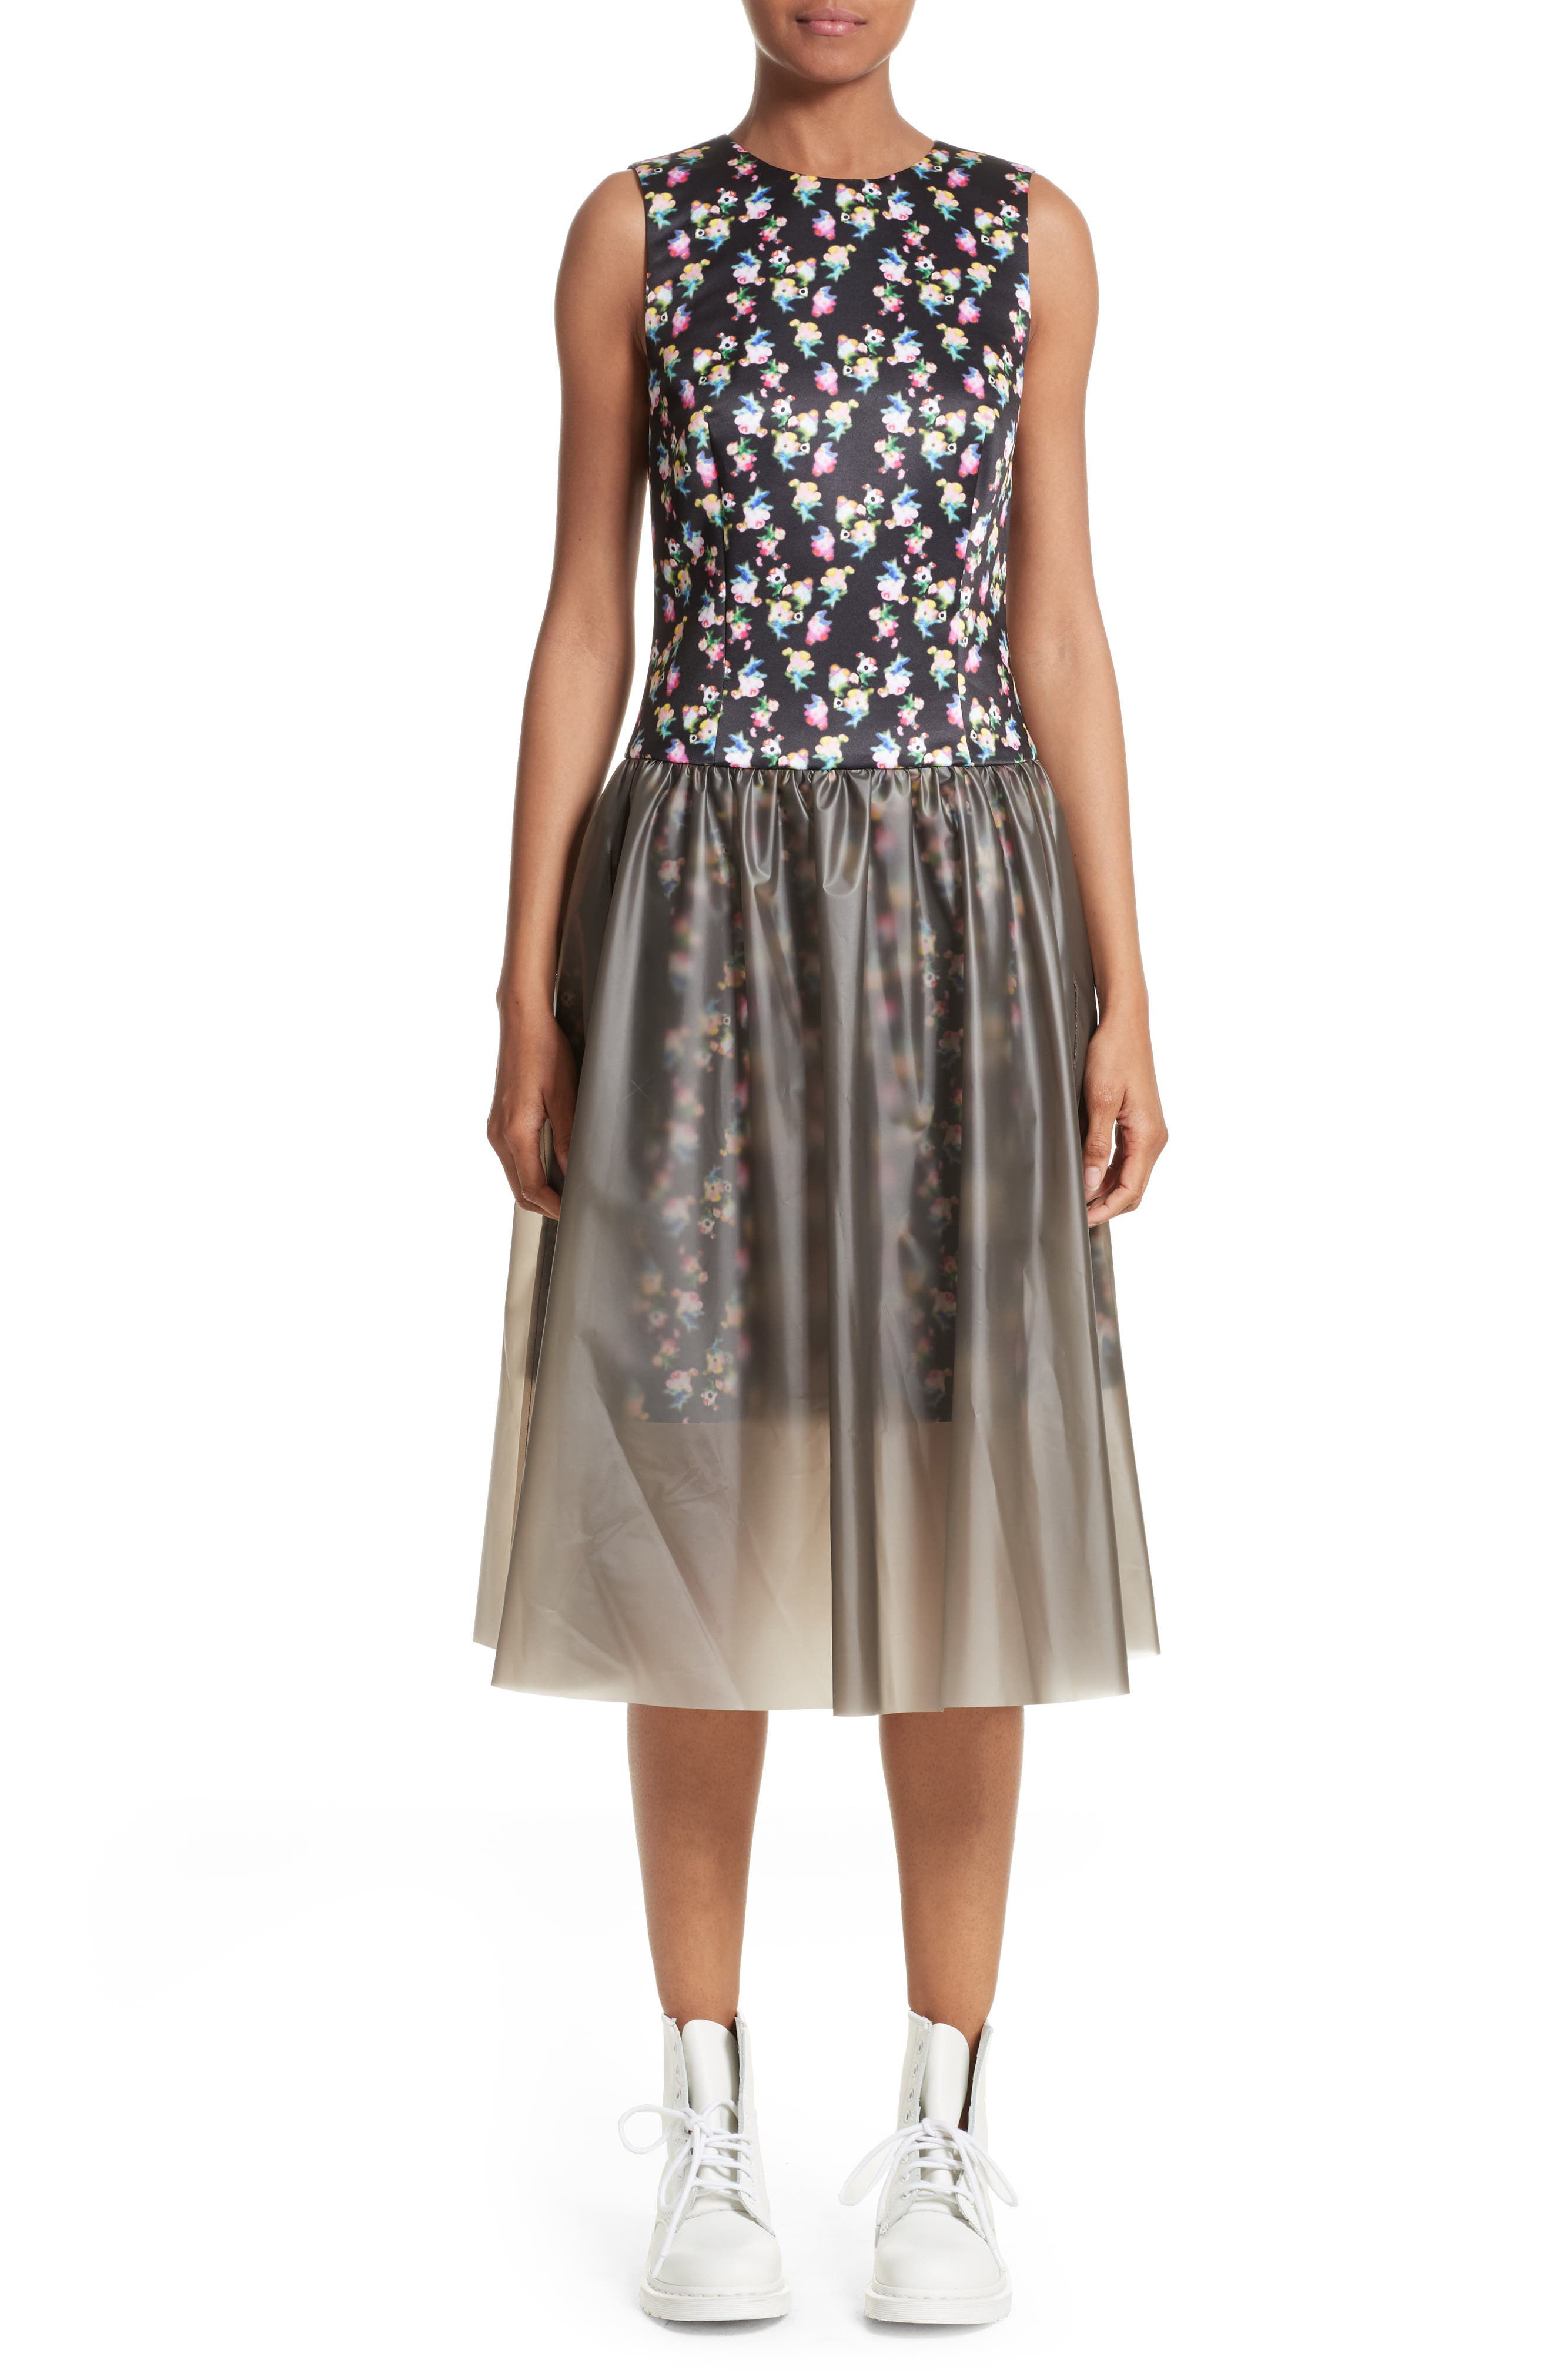 Floral Print Fit & Flare Dress with Vinyl Skirt,                             Main thumbnail 1, color,                             001